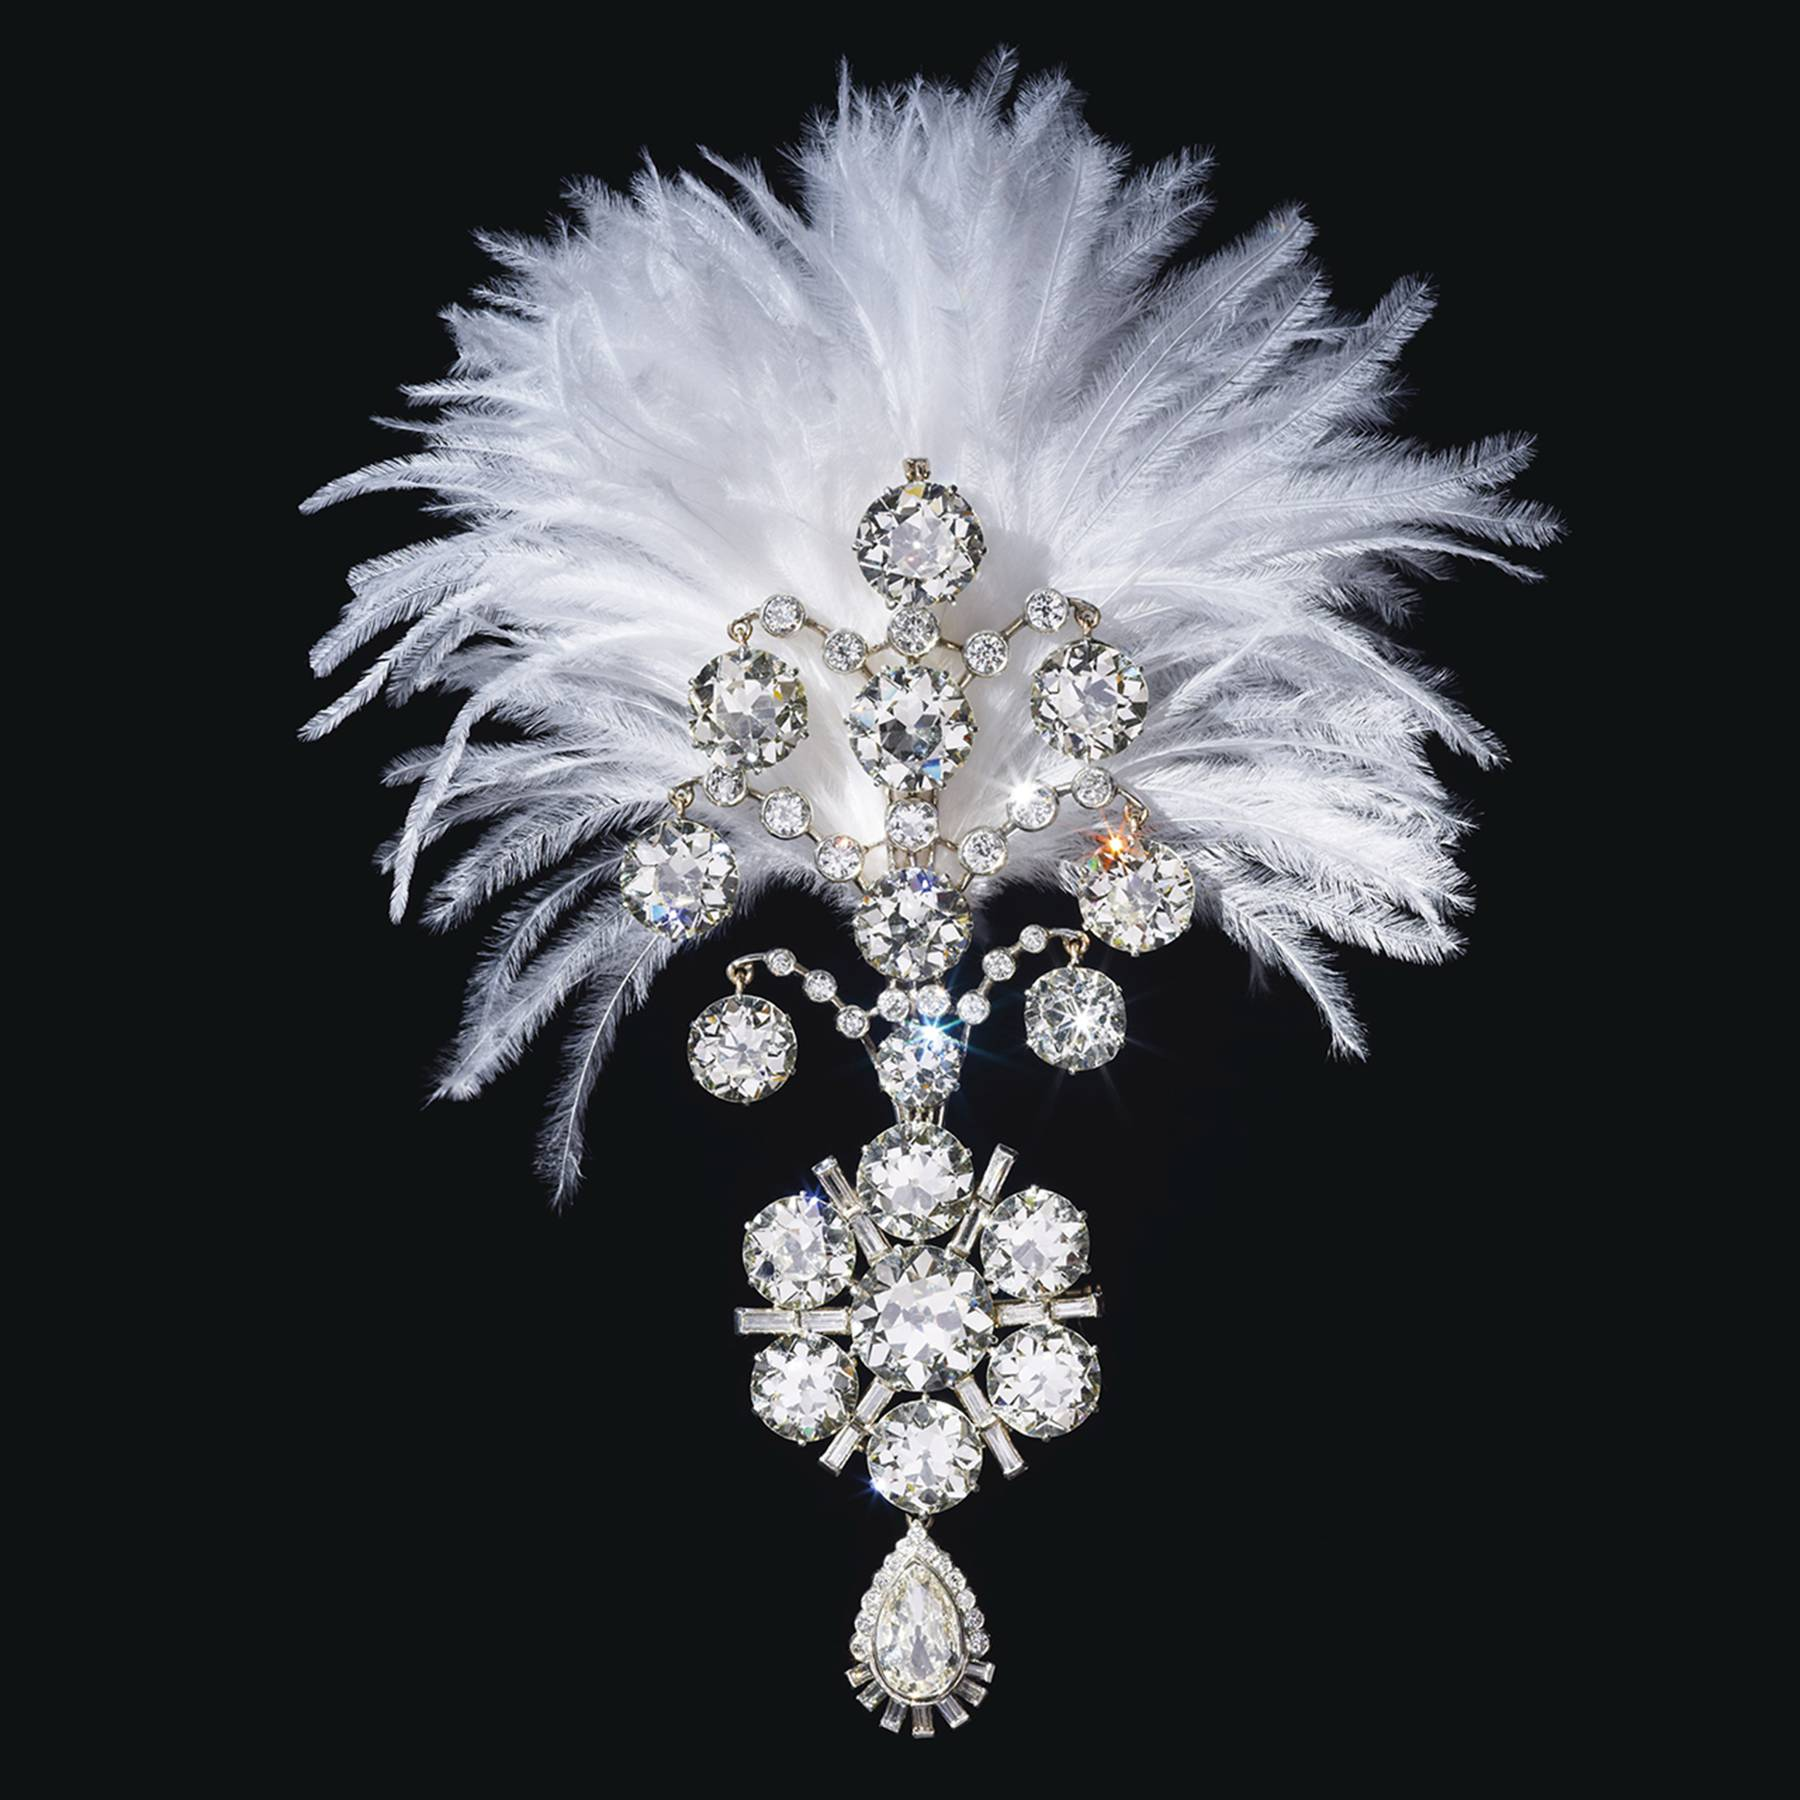 Belle Époque diamond jigha, 1907 and remodelled circa 1935. The turban ornament set with old baguette and pear-shaped diamonds, white gold, fitted with plume holder on the reverse, lower portion detachable and may be worn as a brooch. Image: Christie's